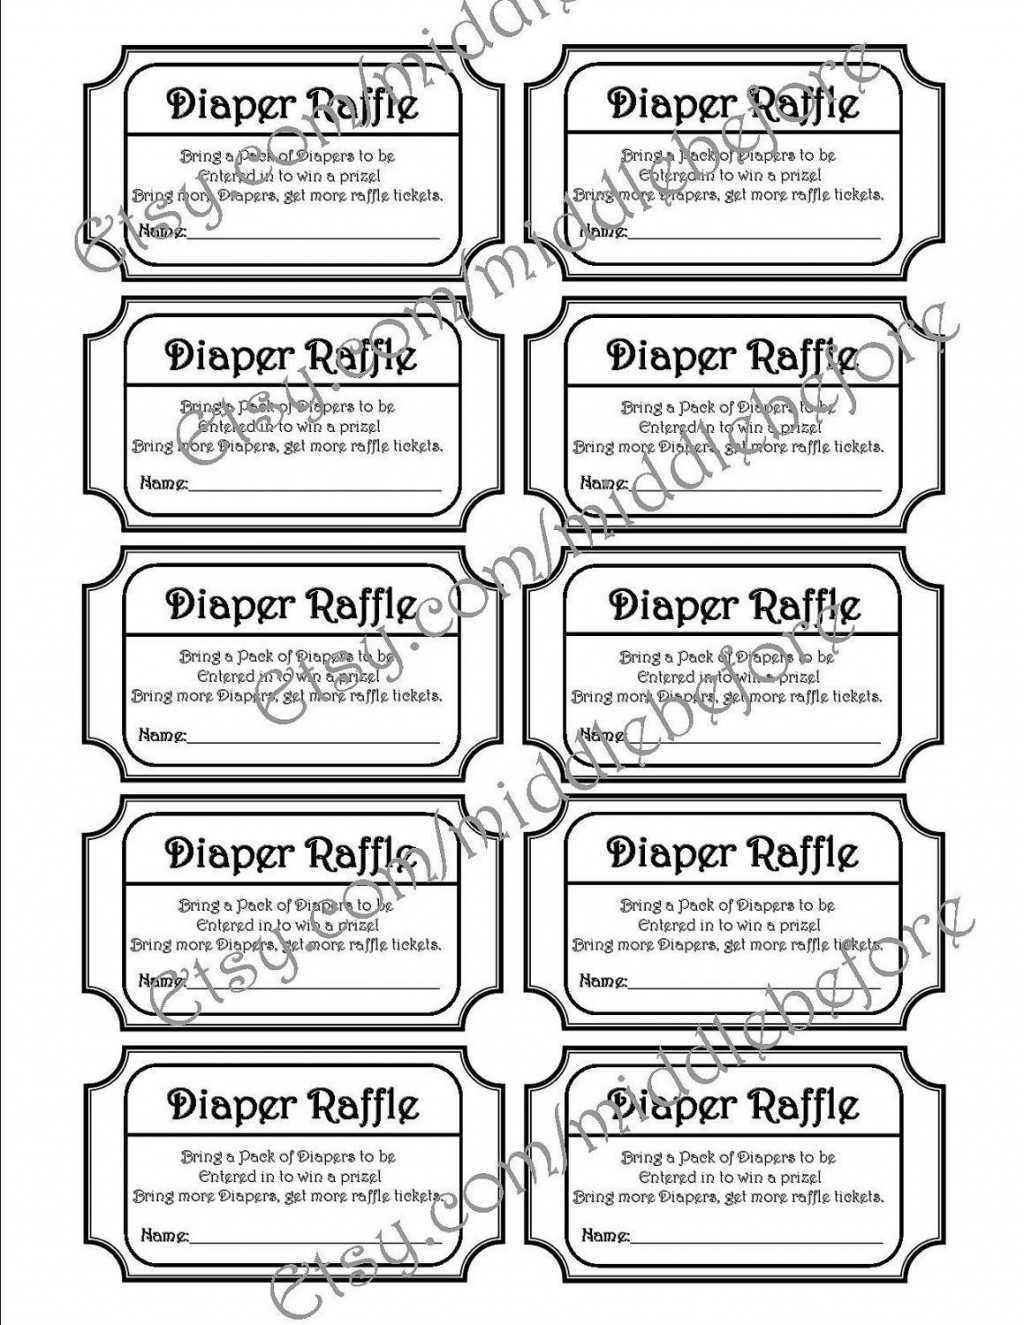 001 Dreaded Diaper Raffle Ticket Template High Resolution  Boy Free Printable Print Black And WhiteLarge